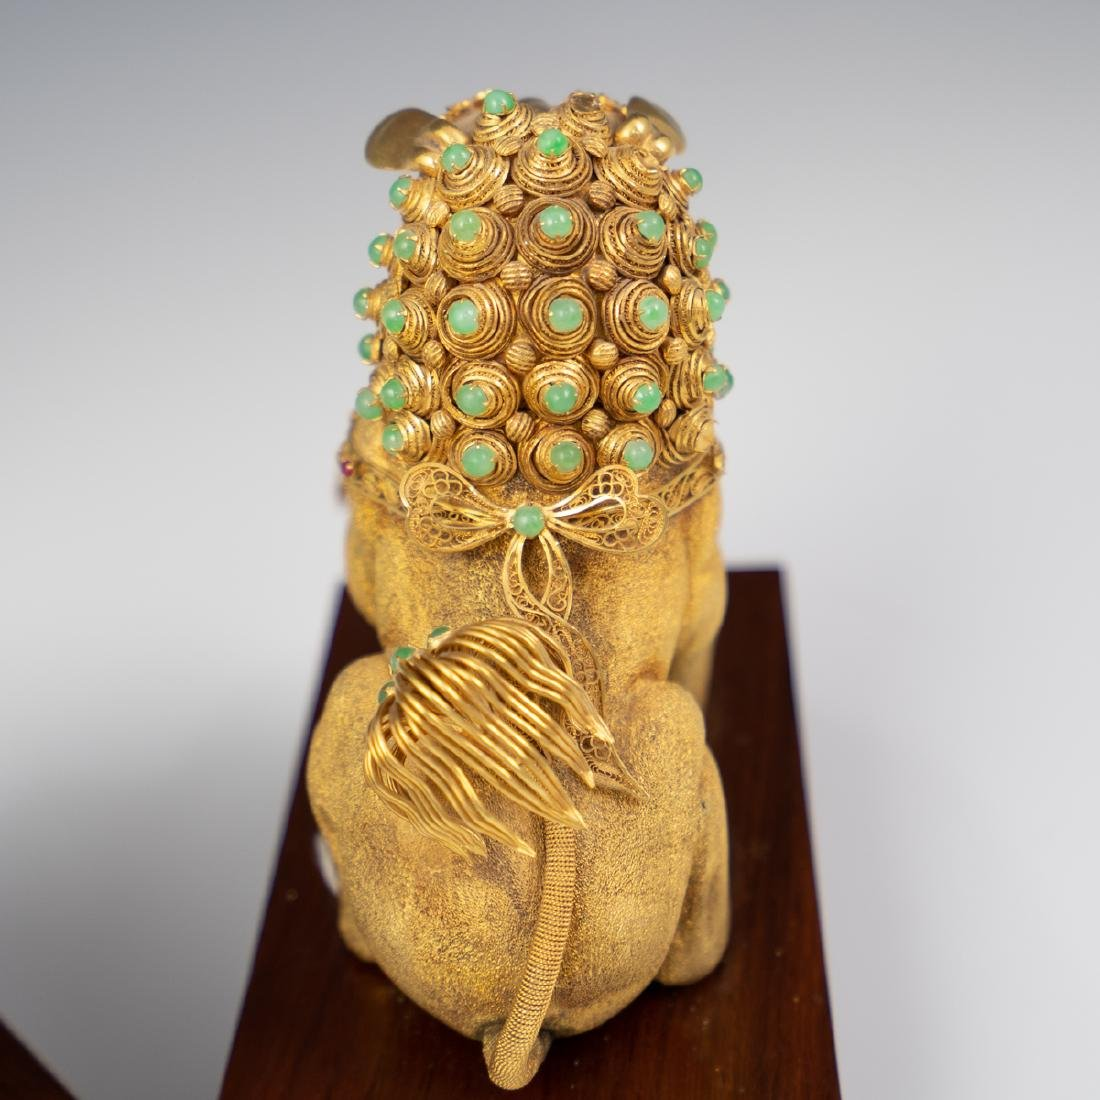 14K Solid Gold and Precious Stone Foo Dog - 7